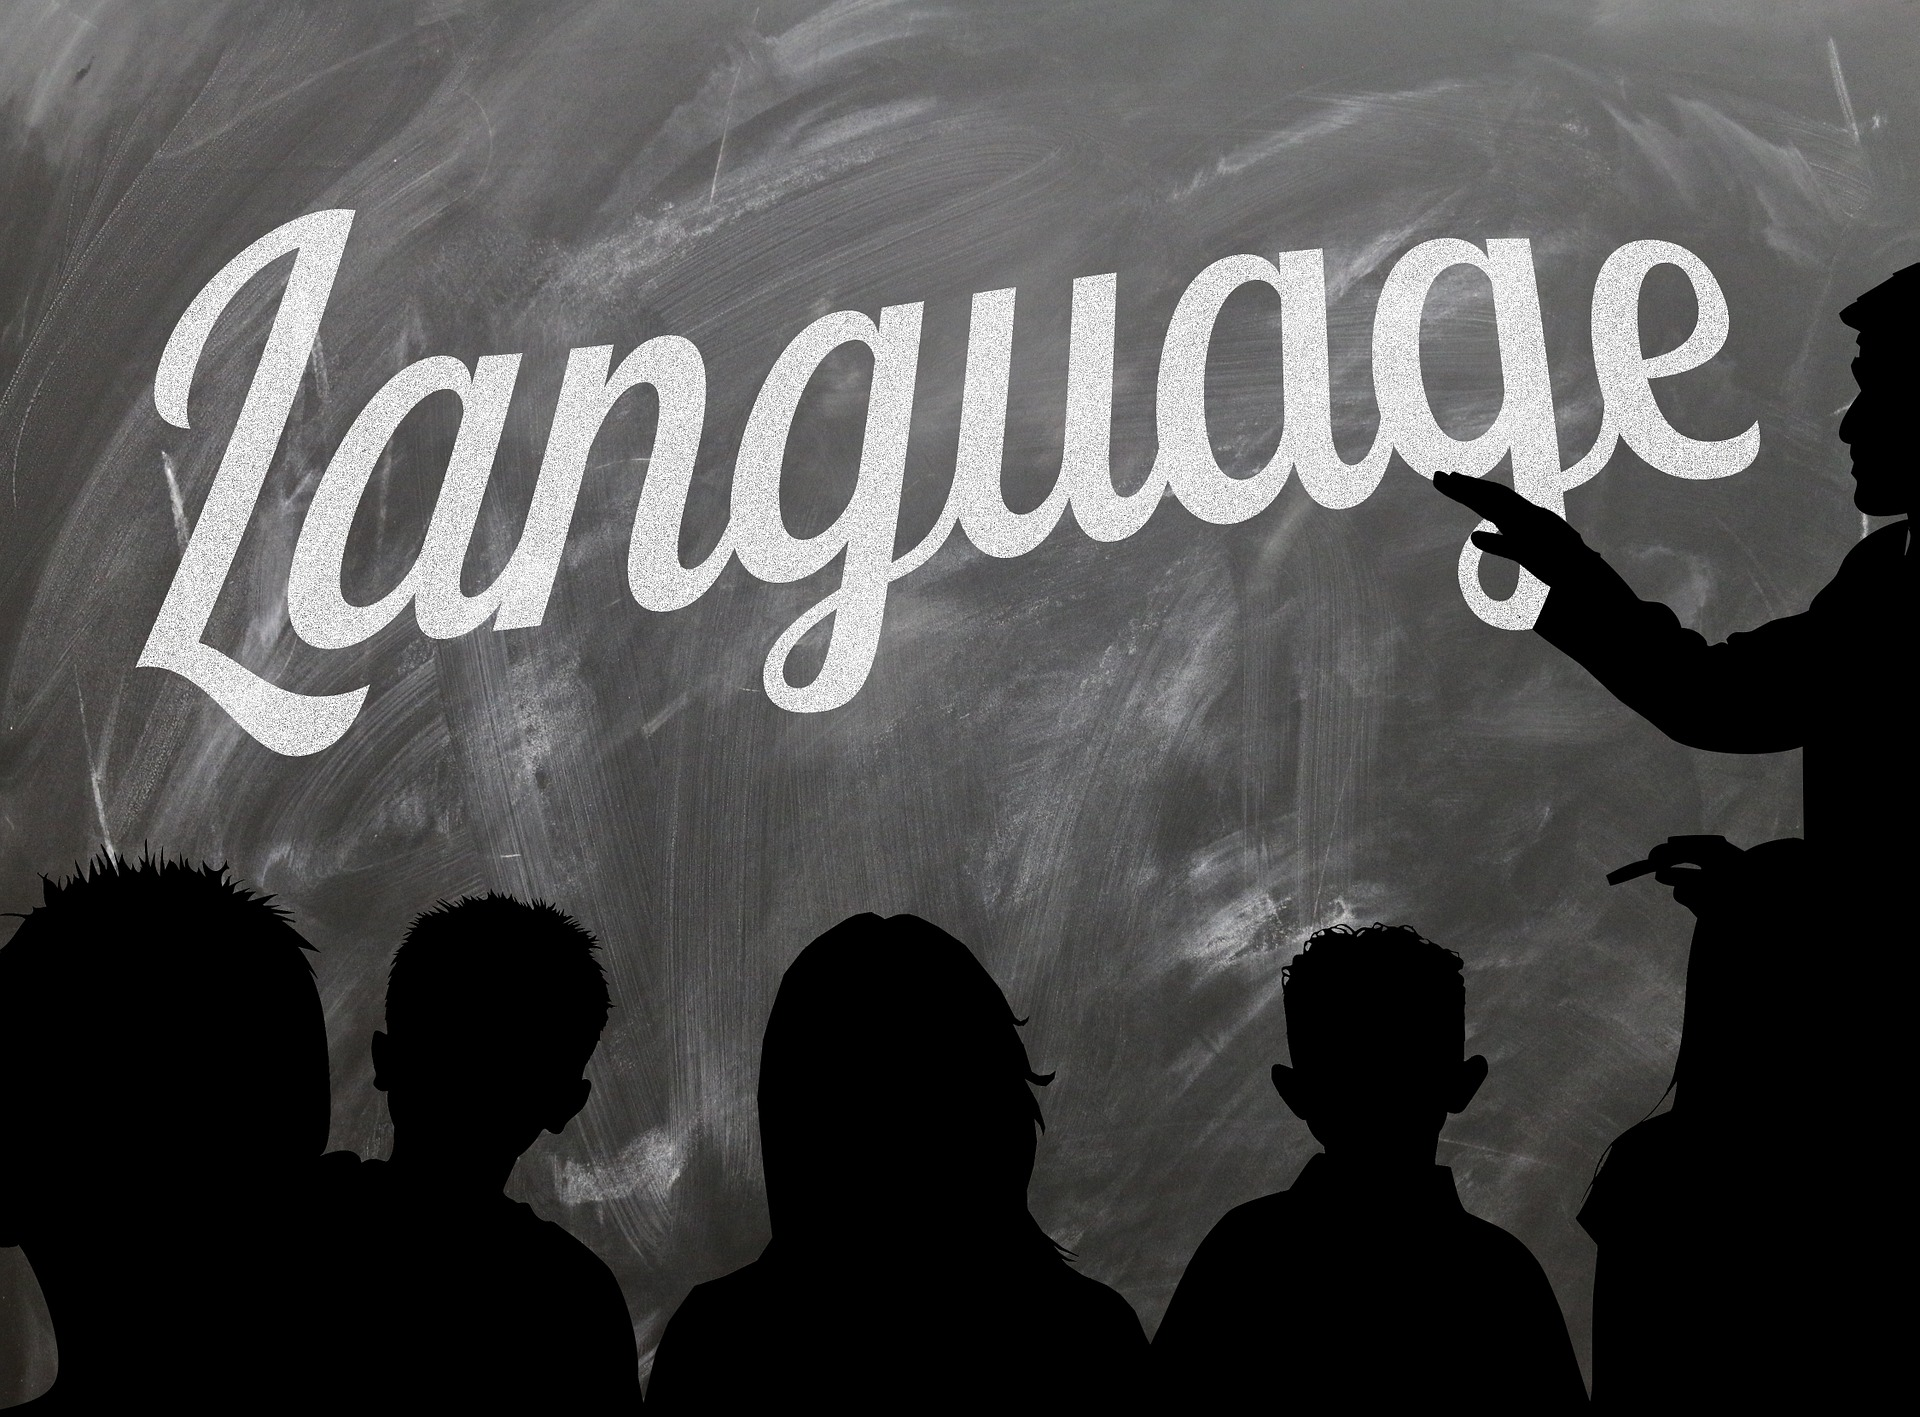 The word language written on the chalkboard with a silhouette of children in front of the chalkboard.